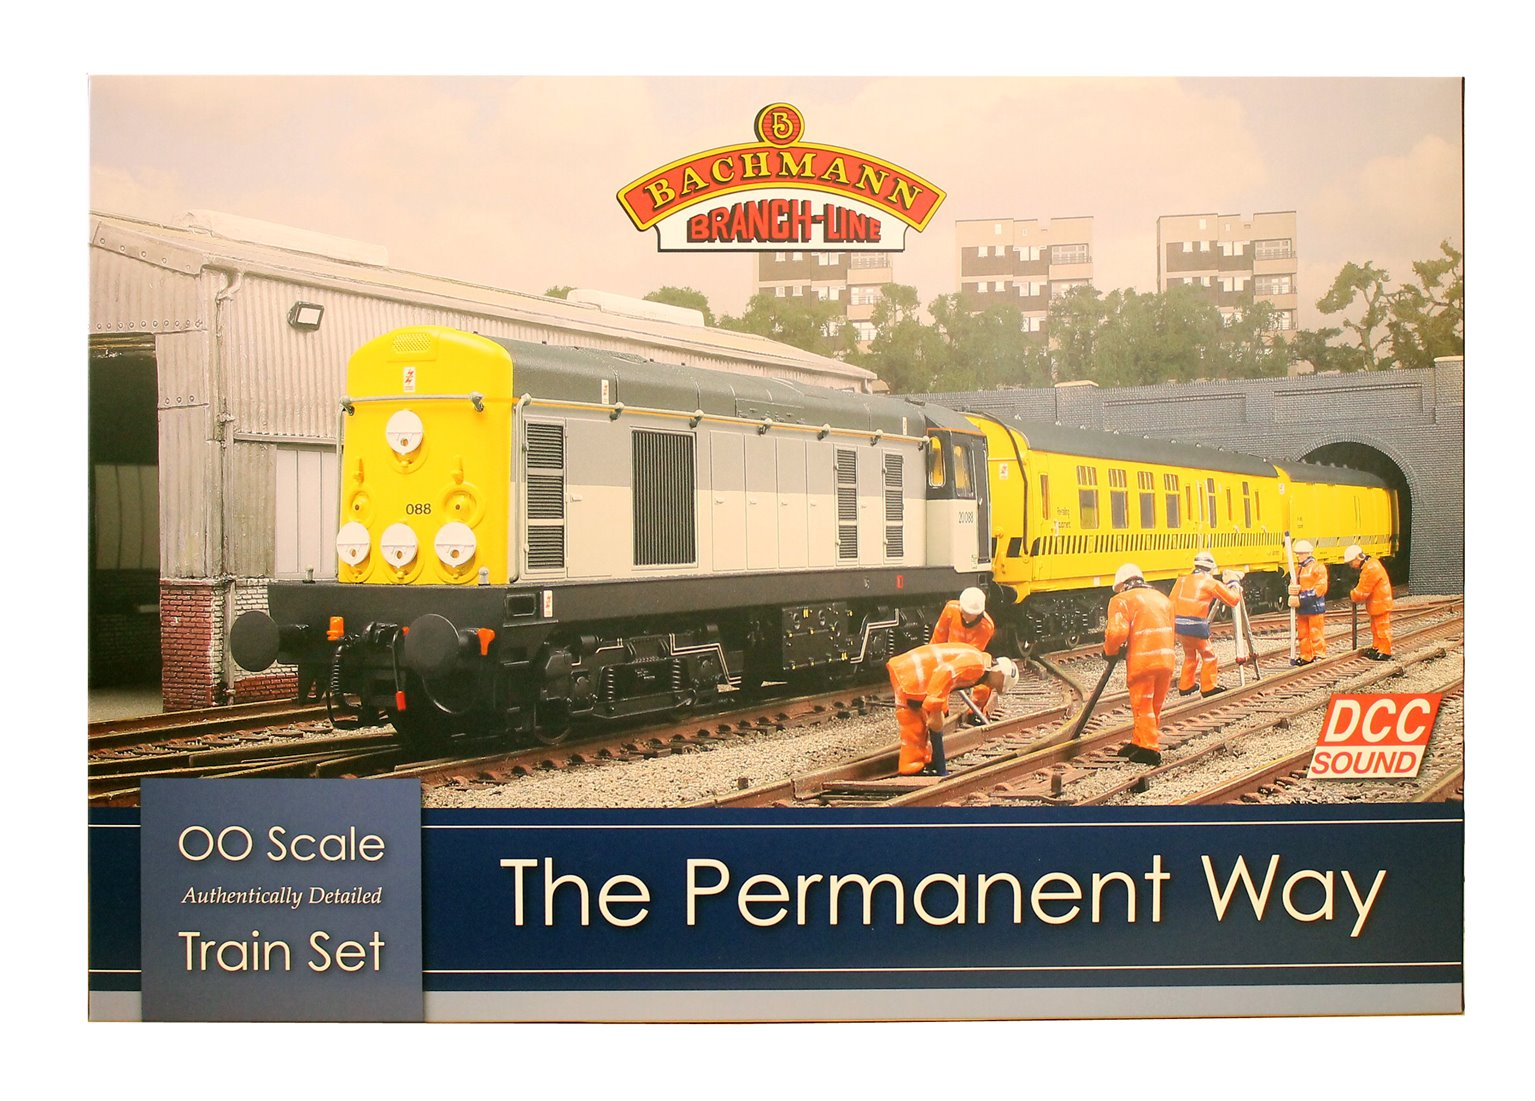 The Permanent Way' Train Set